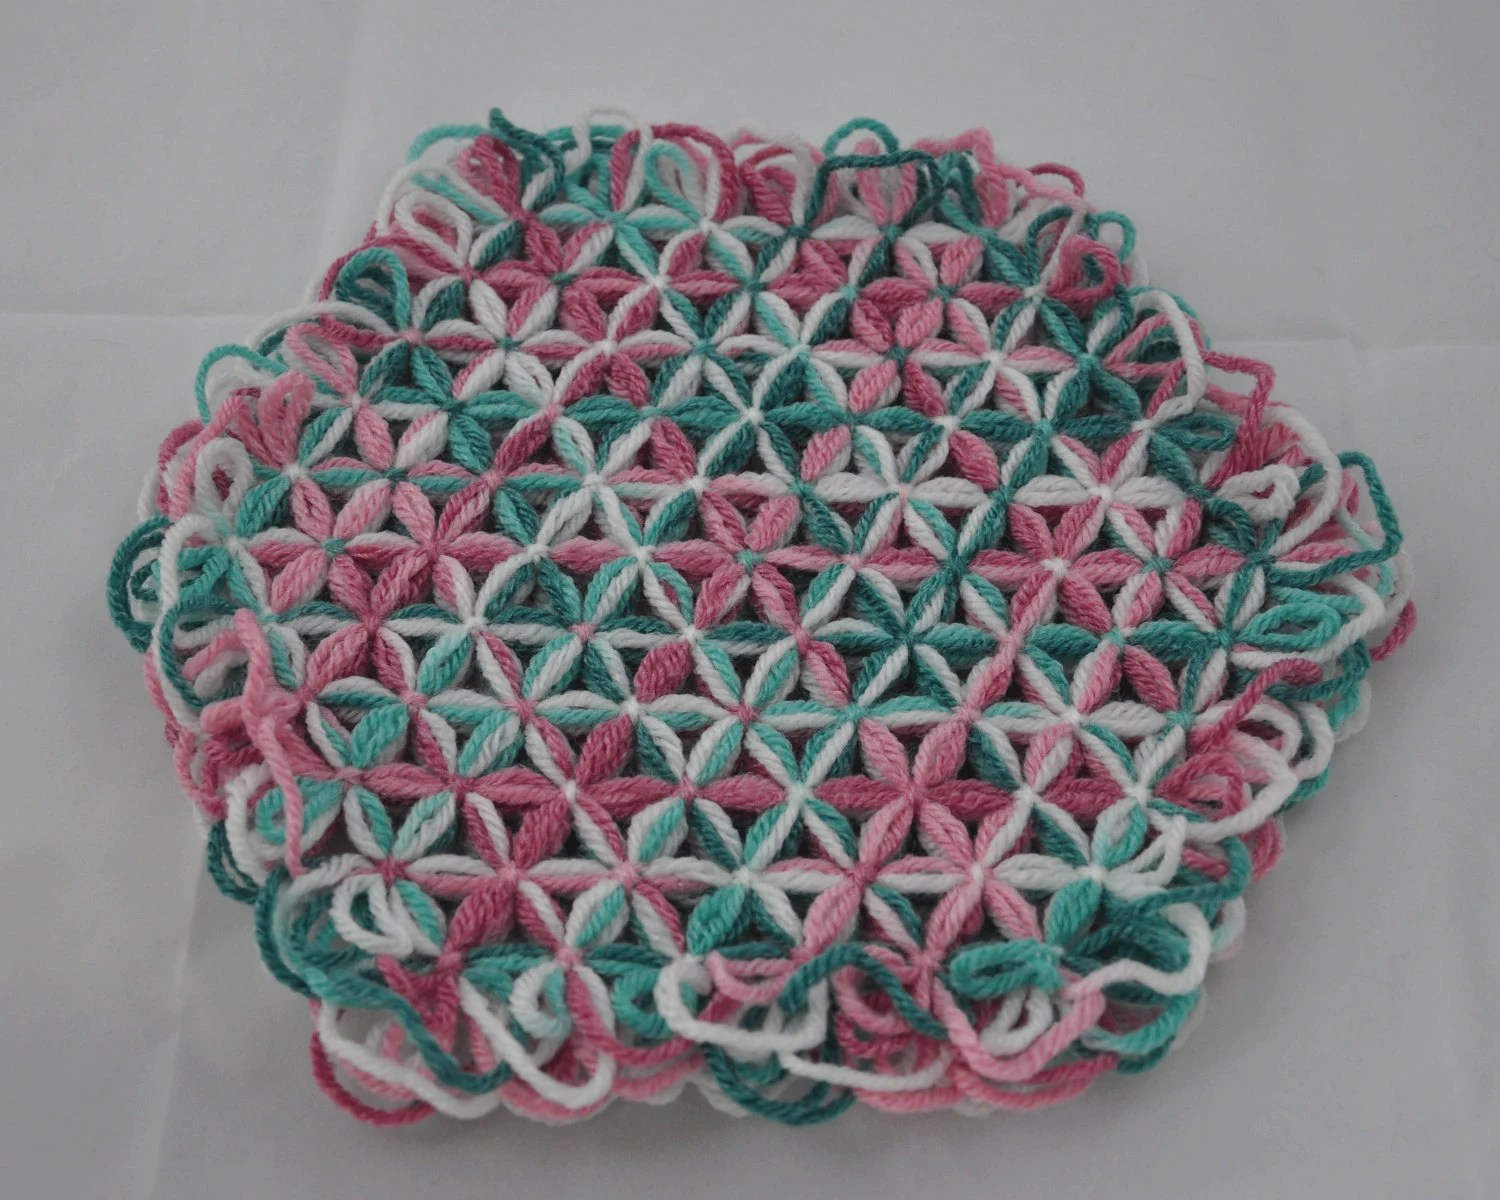 Small Trivet in 4 Layers of Rambling Rose Mluticolor Yarn with Rambling Rose Ties - Spring Easter Egg Colors